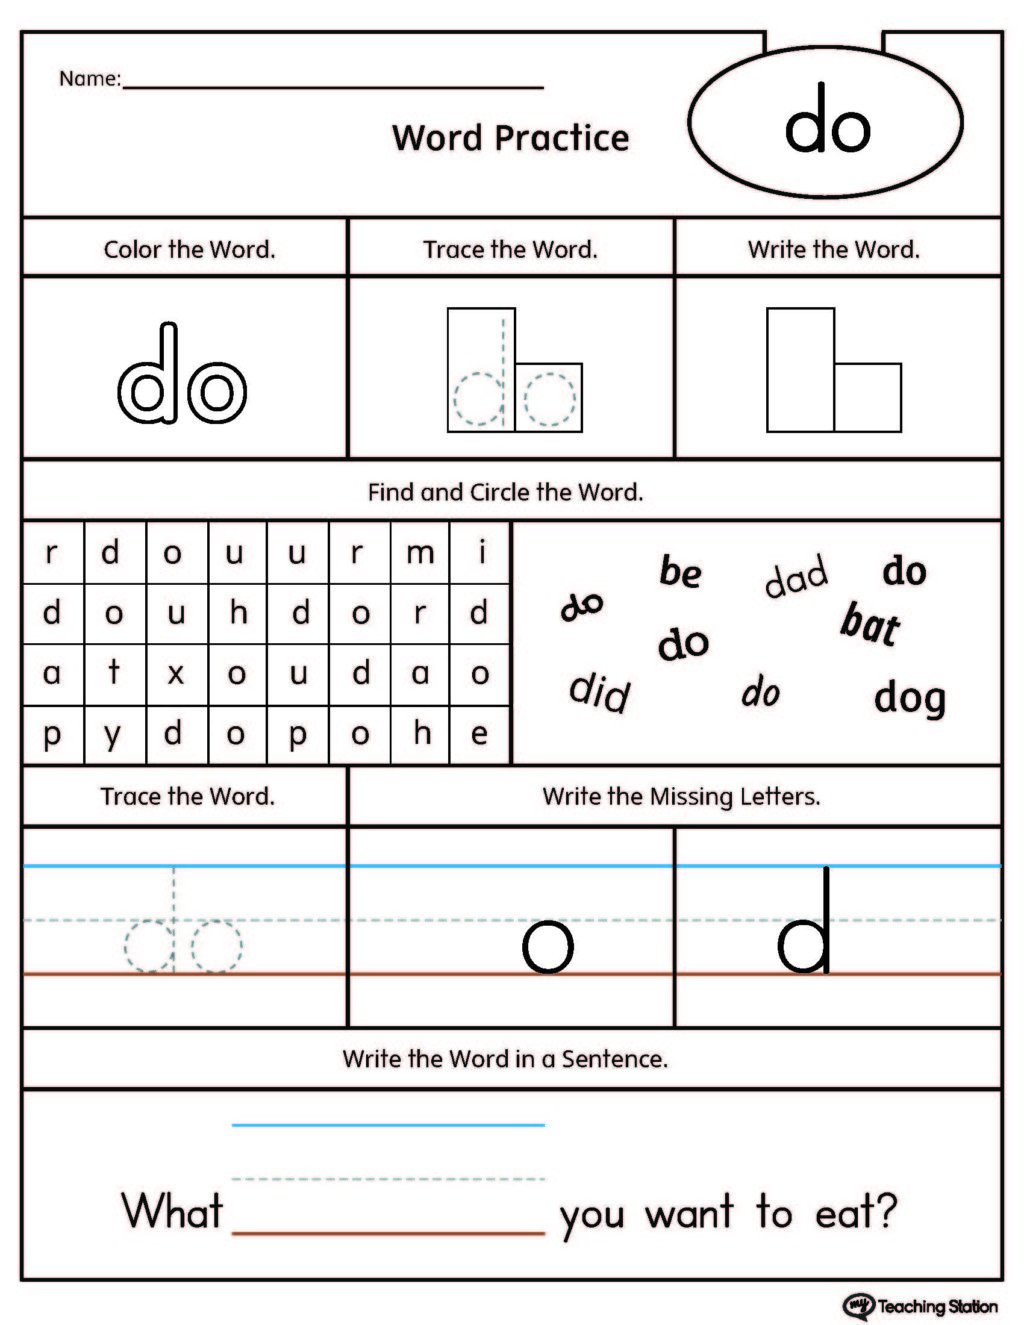 Free Printable Dog Training Worksheets Worksheet Educational Printable Worksheets Picture